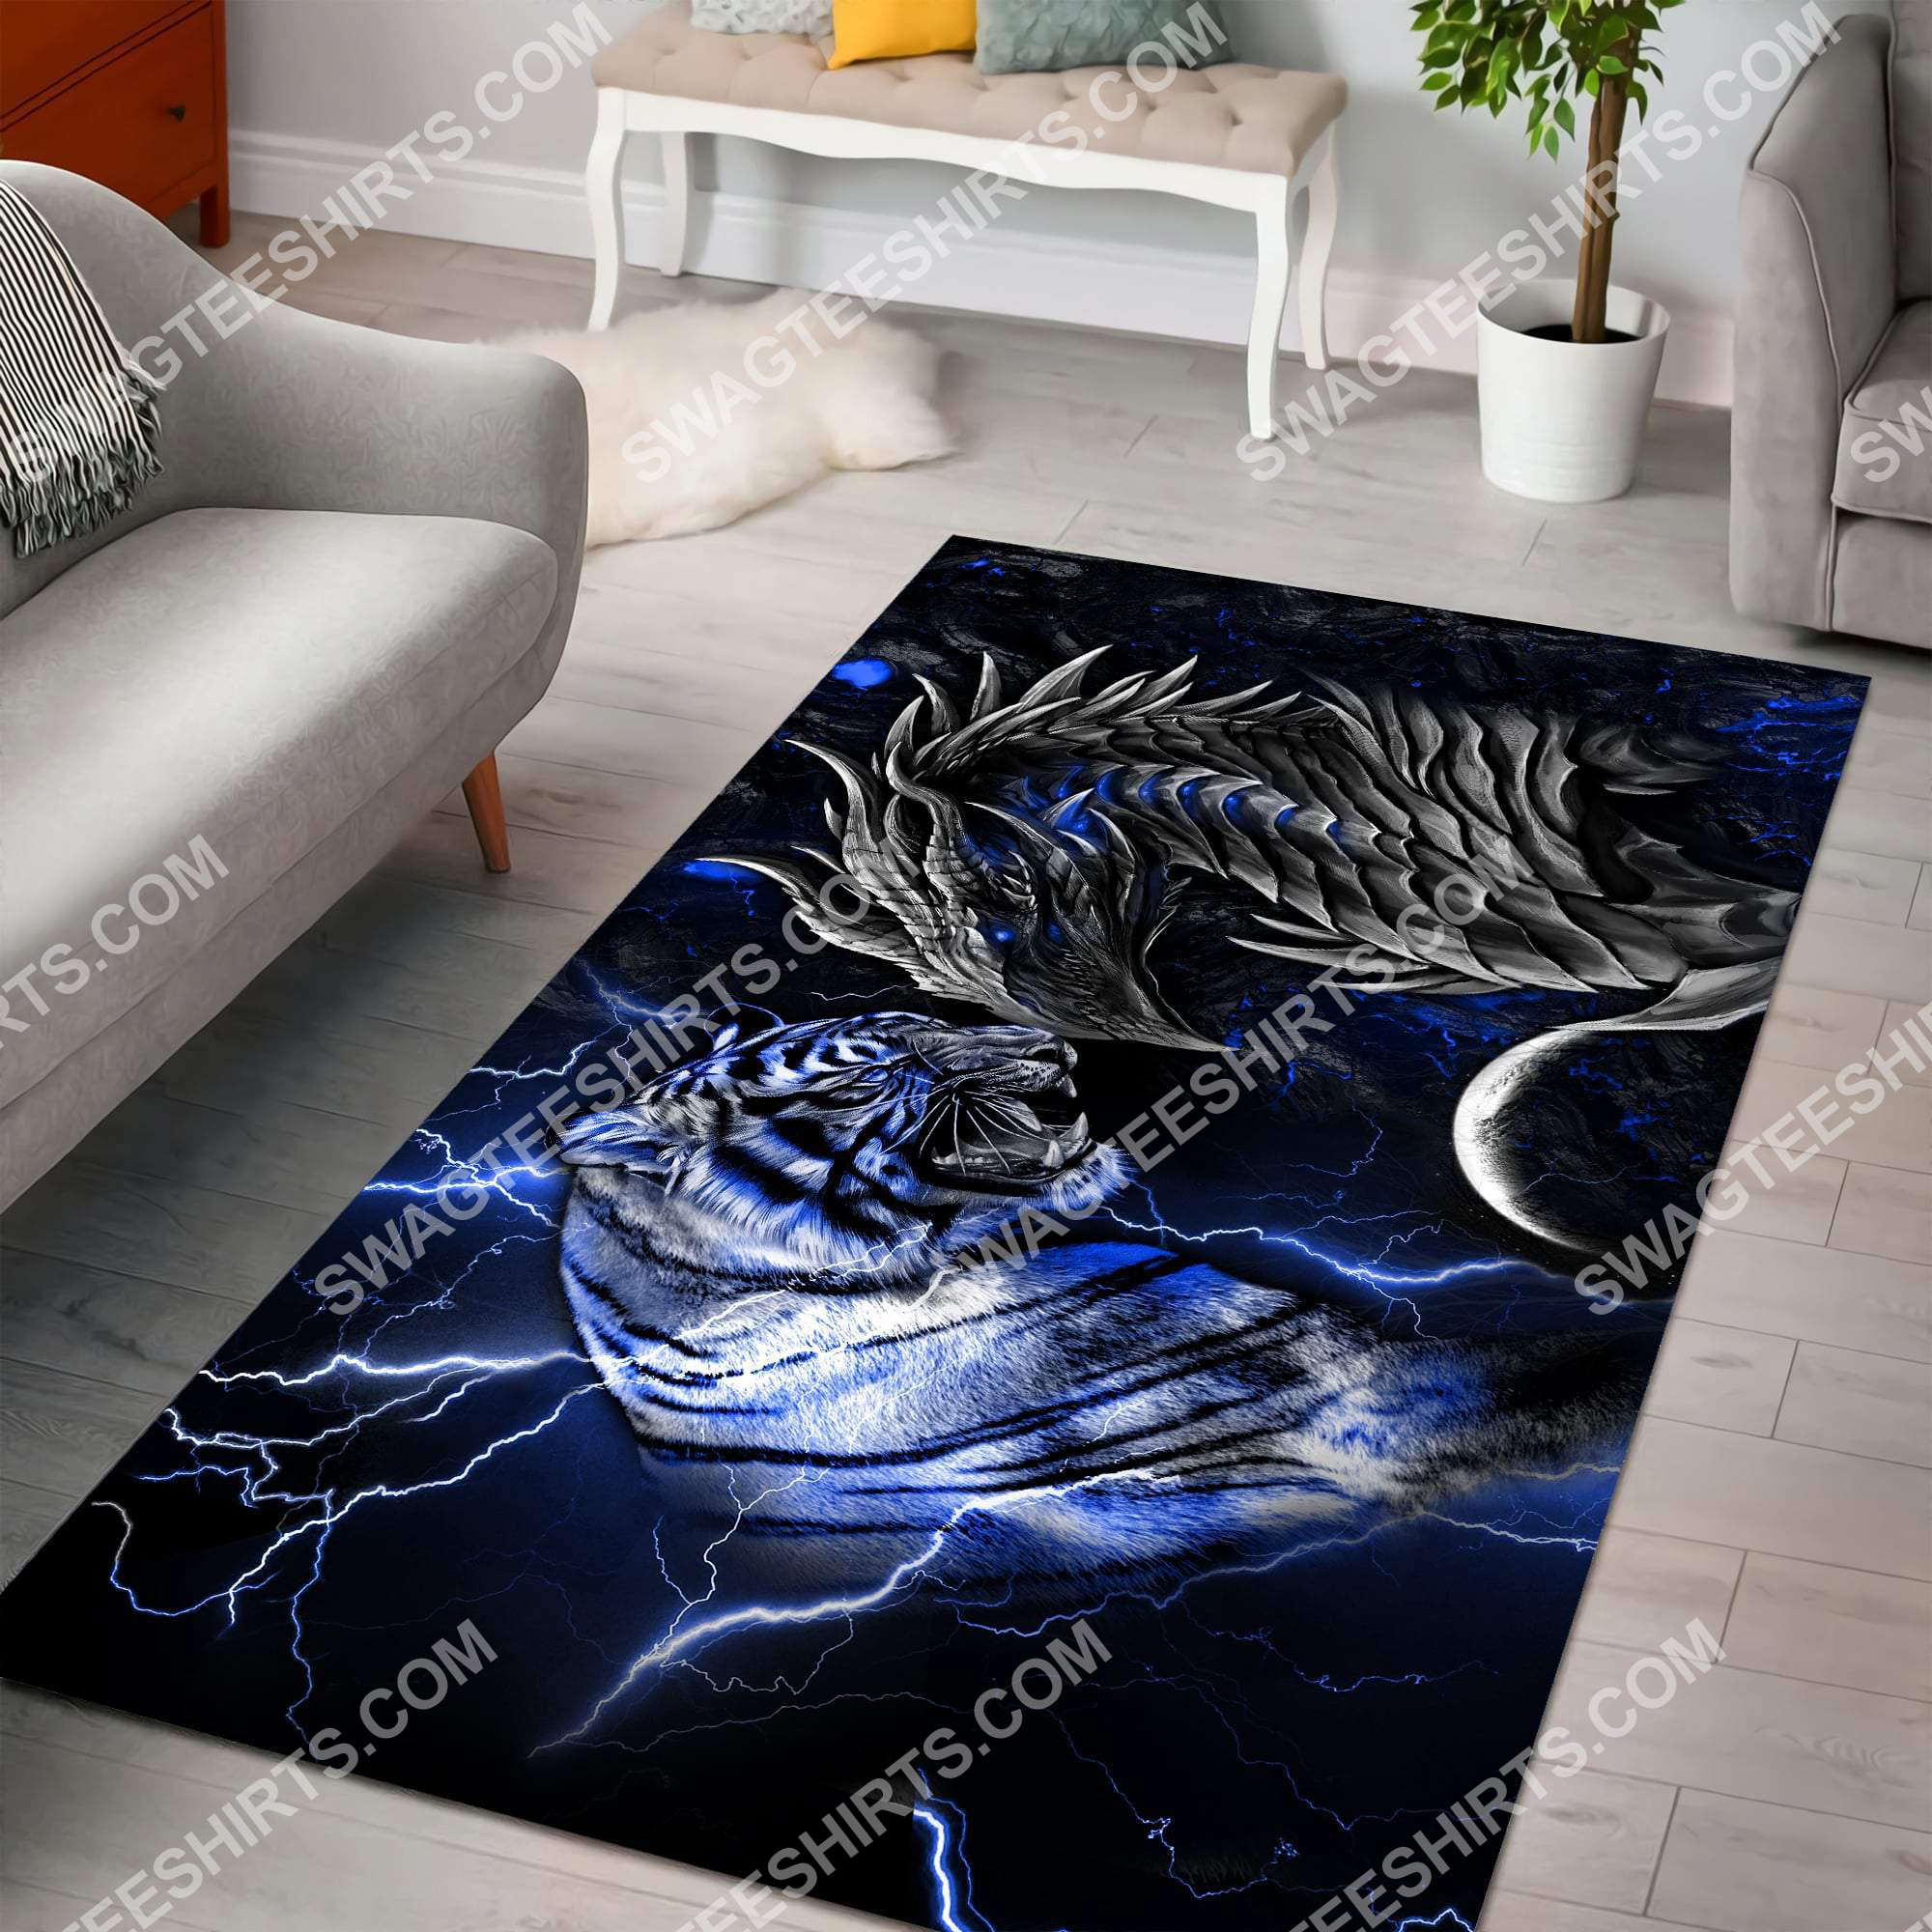 thunder dragon and tiger all over printed rug 2(1) - Copy